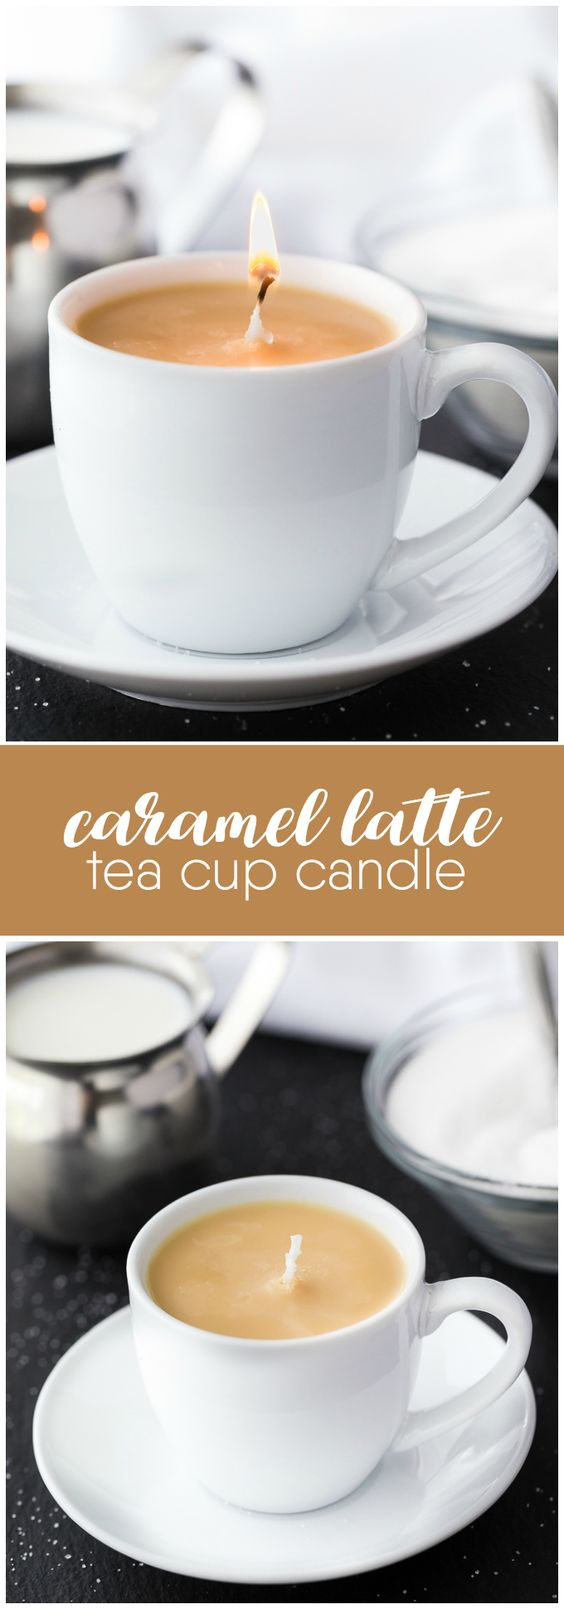 Caramel Latte Tea Cup Candle.